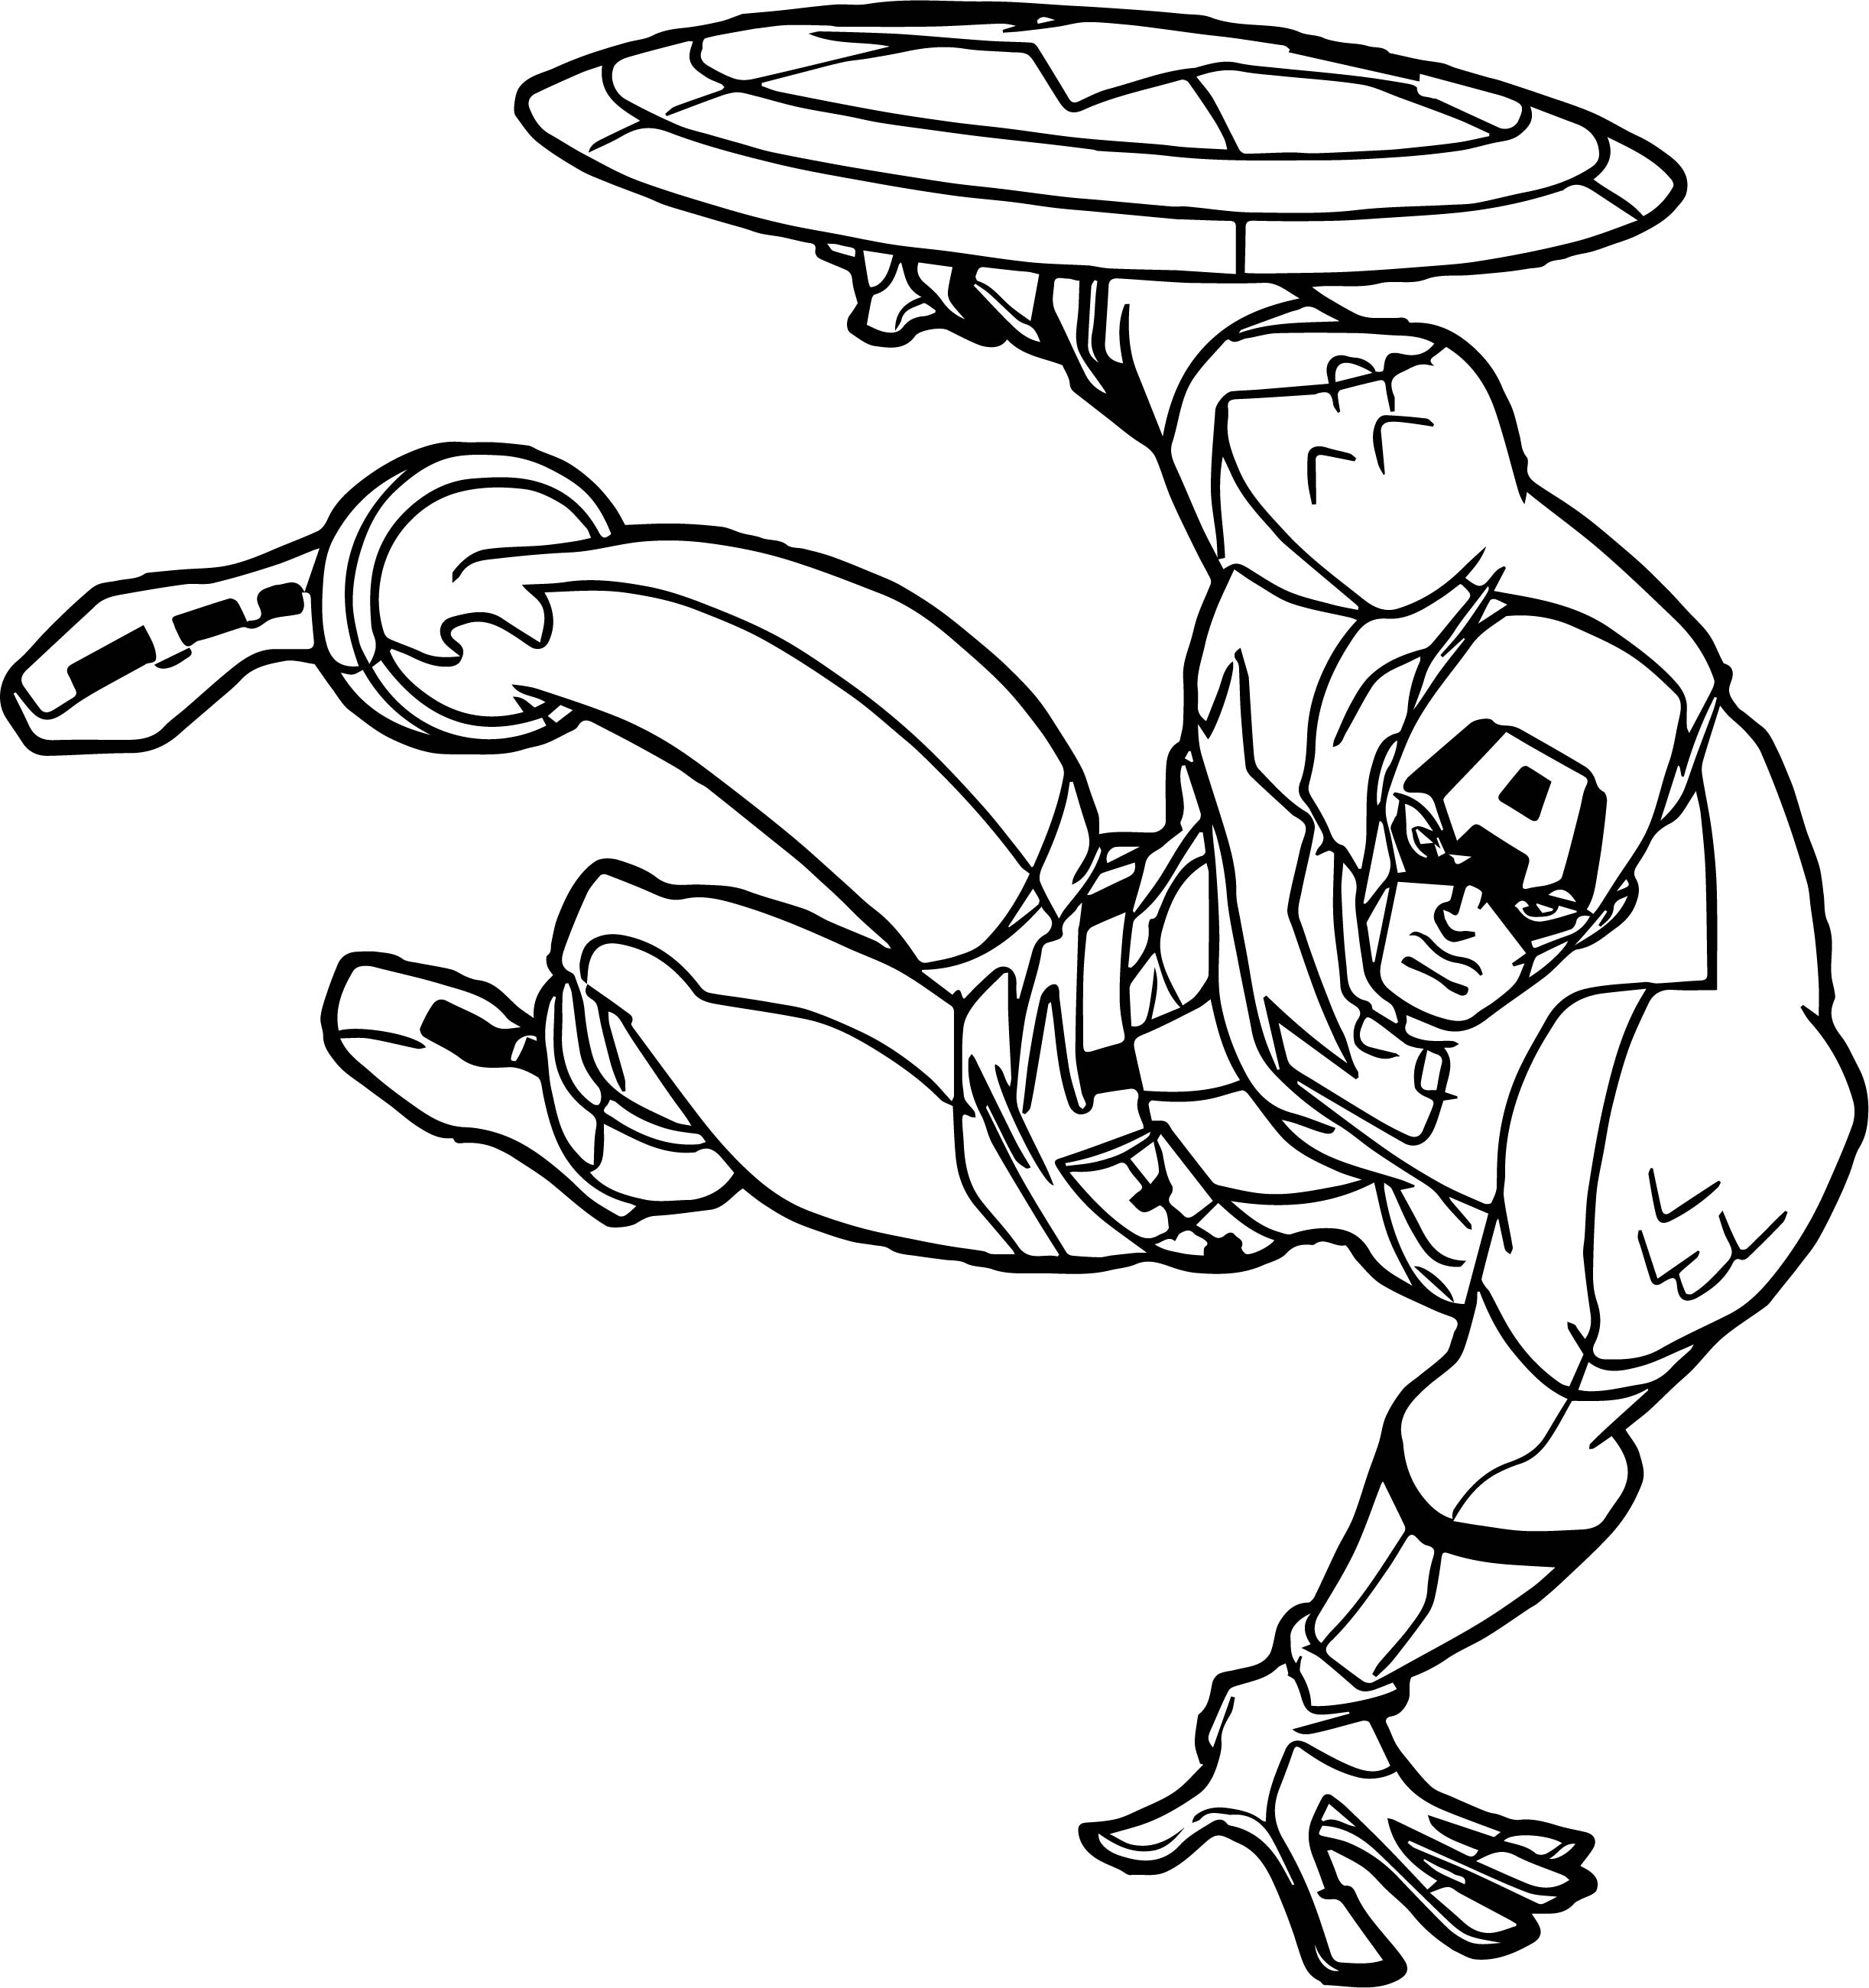 Captain Jump Bounce Coloring Page